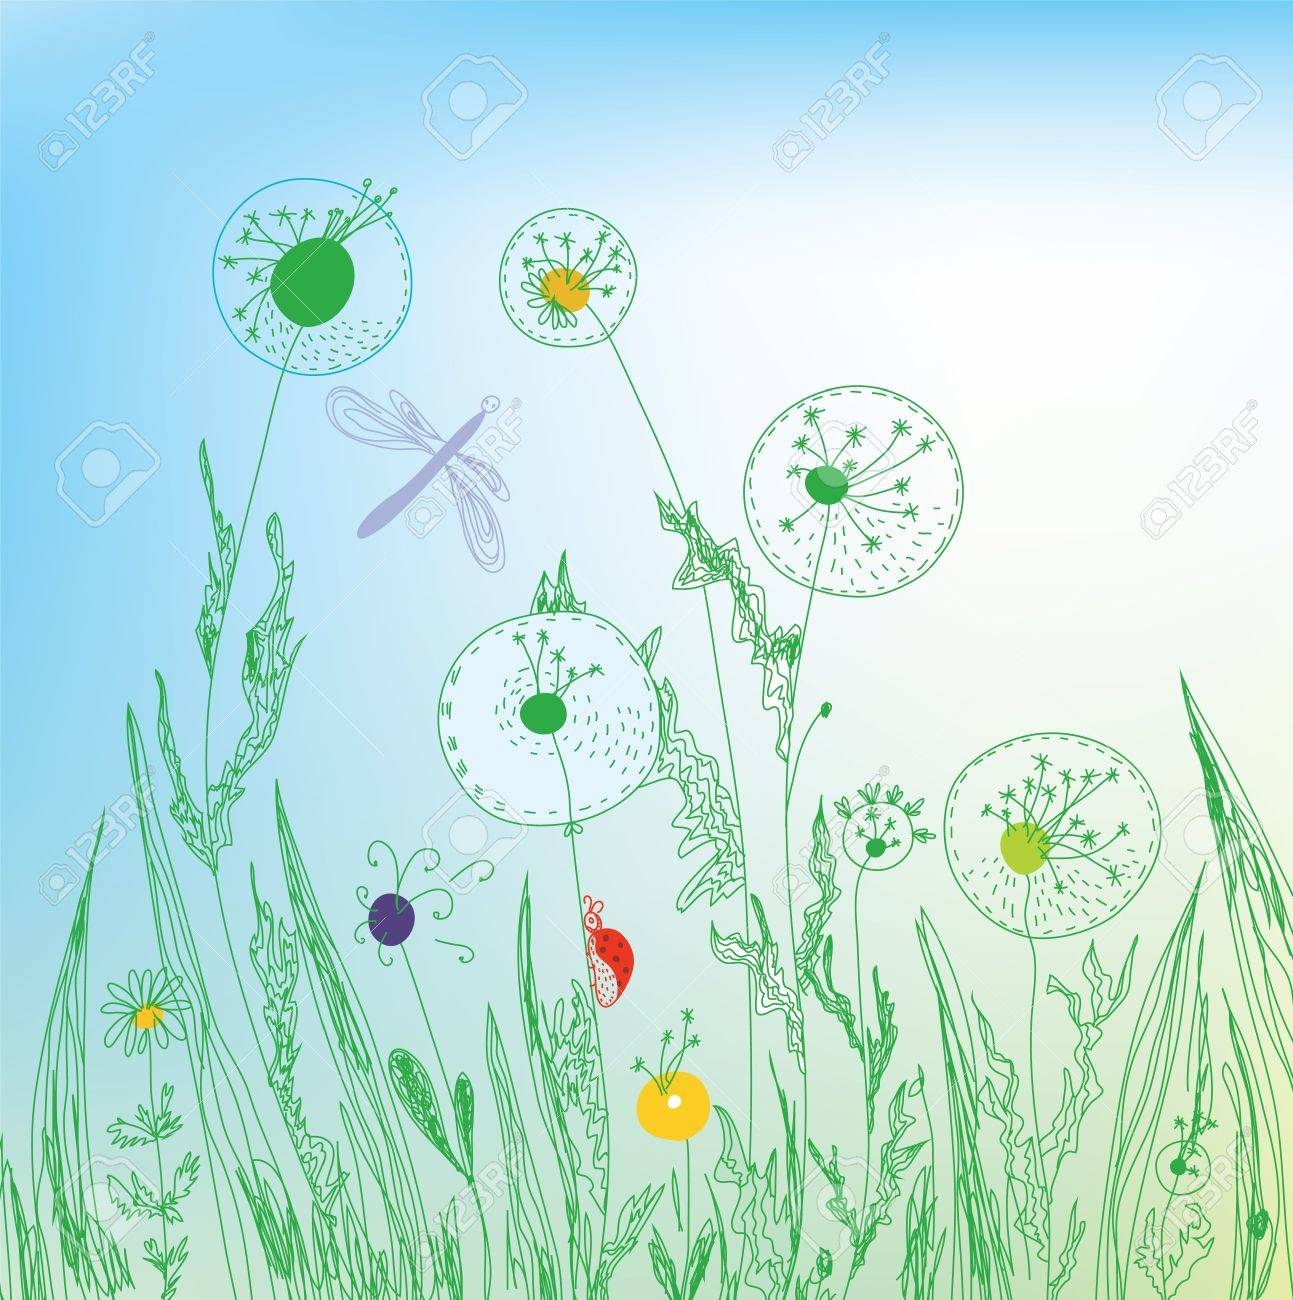 Dandelion and grass field background Stock Vector - 12488499